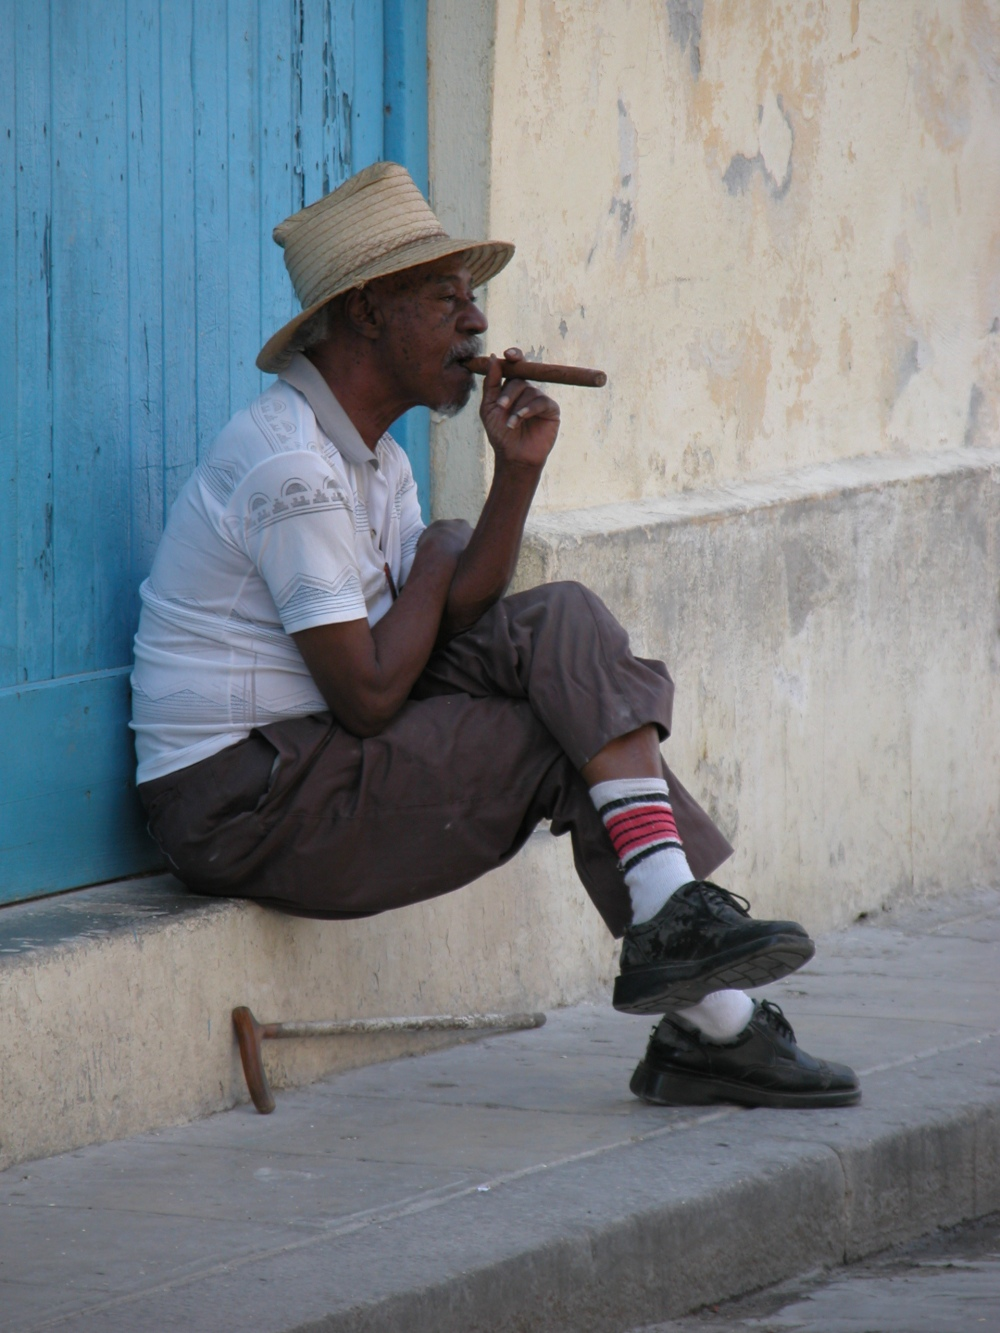 fumando tabaco by freeimages